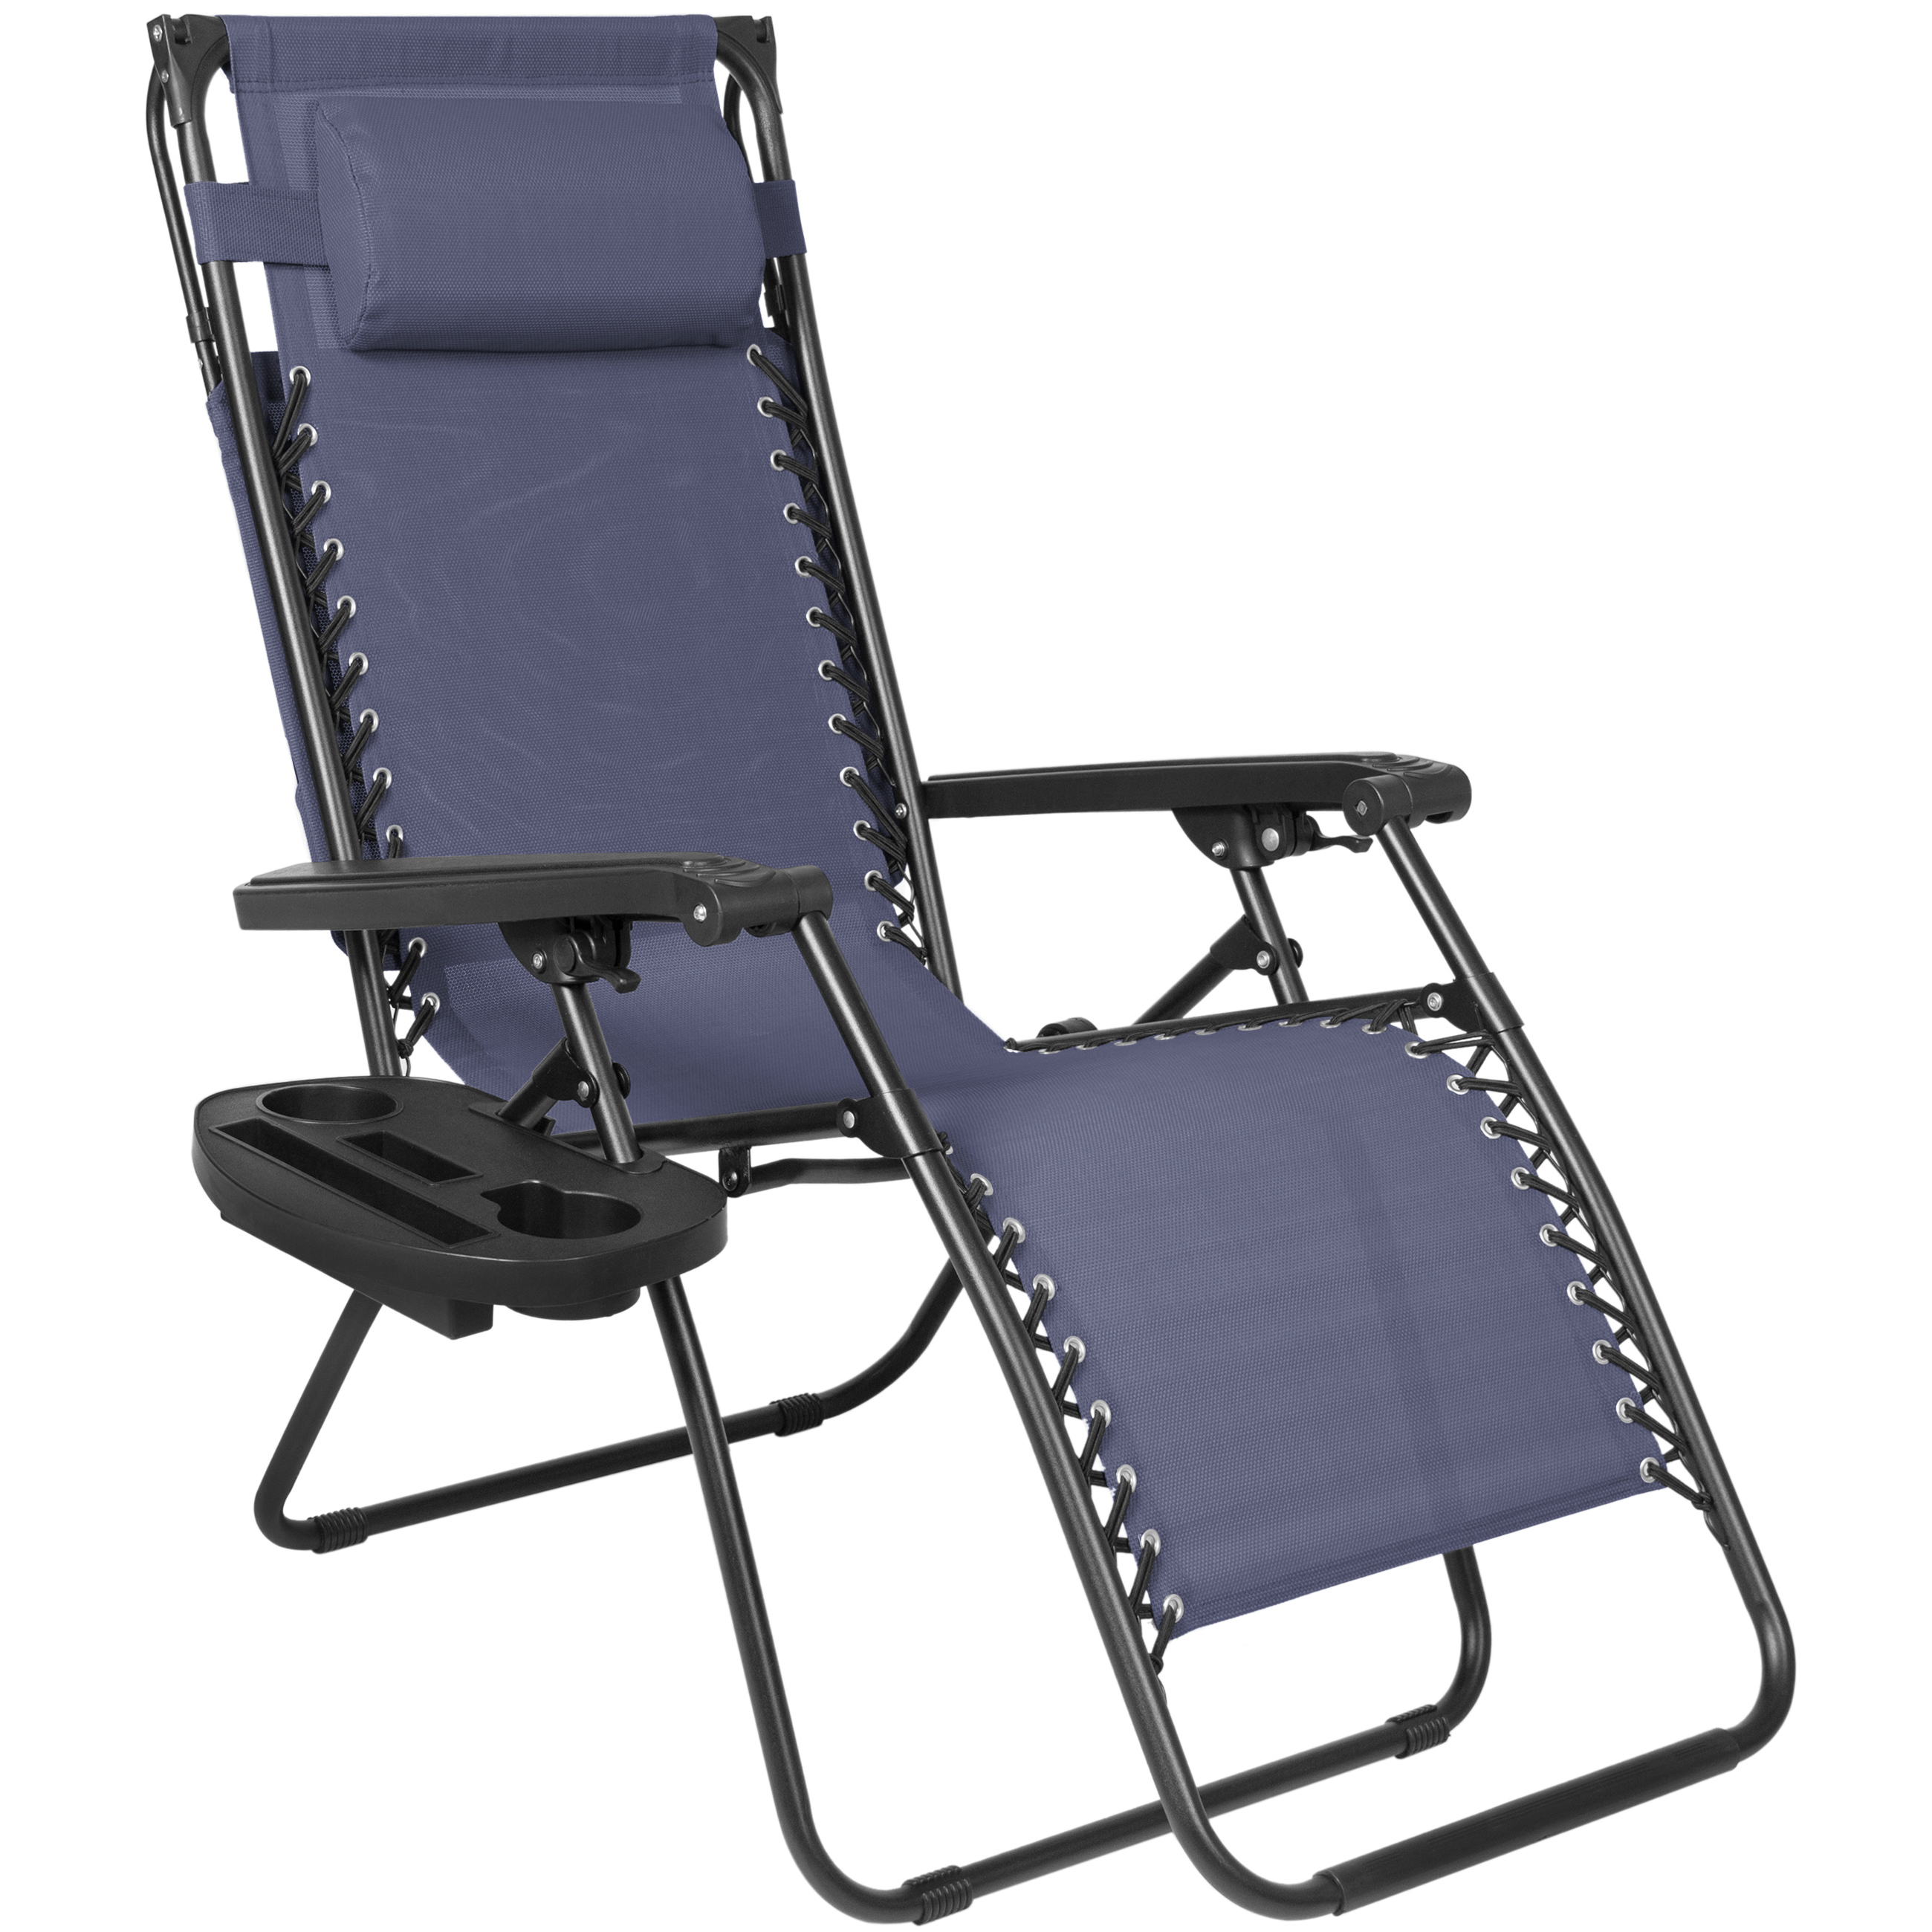 Folding Zero Gravity Recliner Lounge Chair W Canopy Shade ...